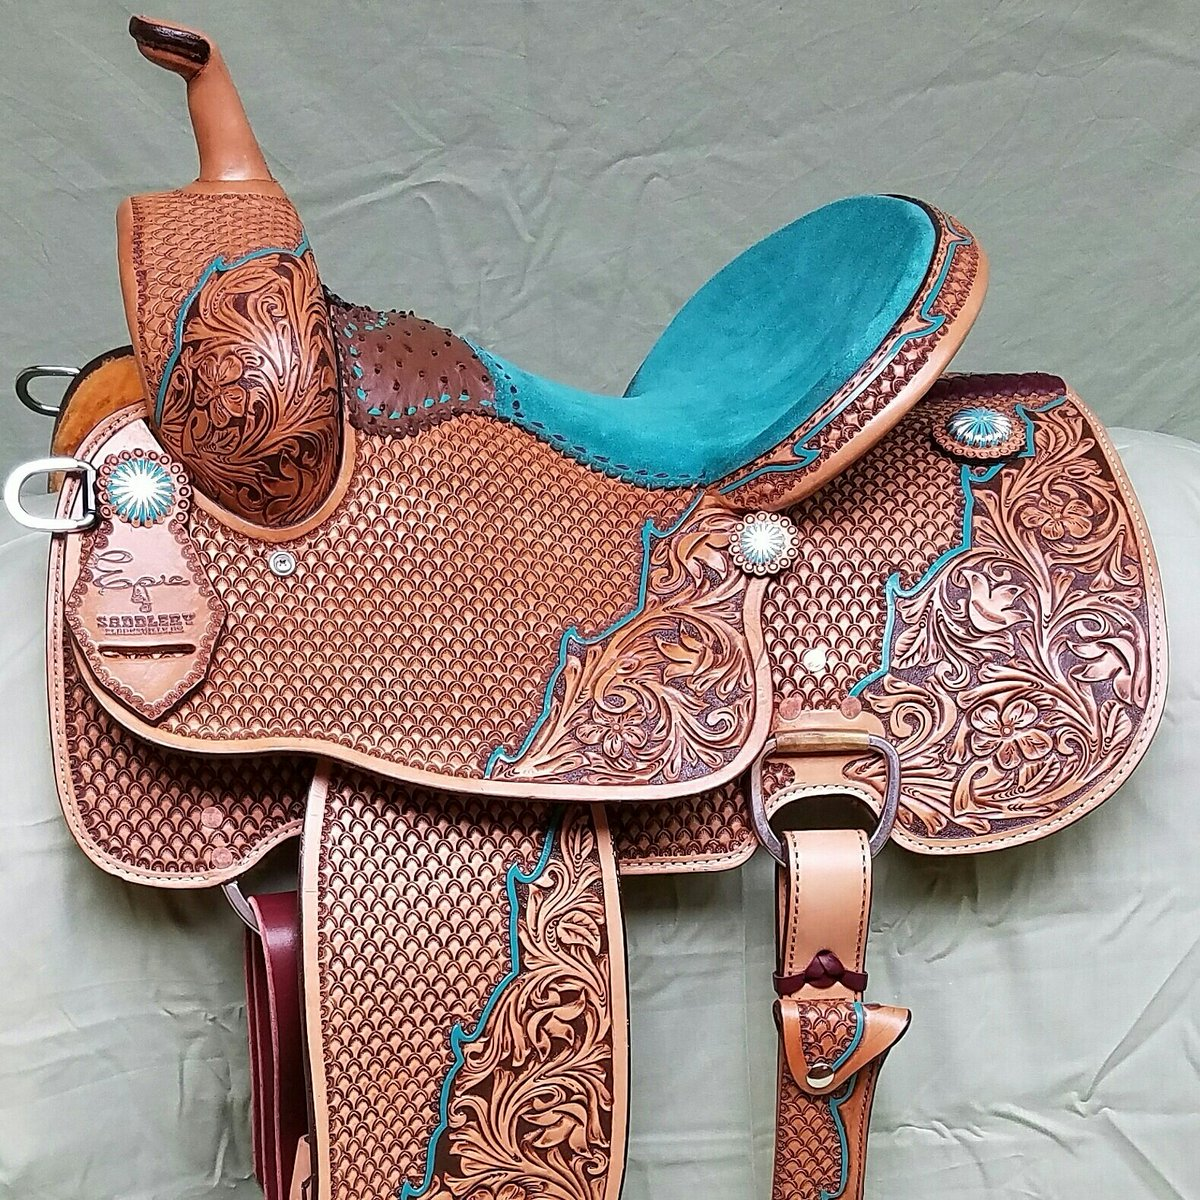 Epic Saddlery (@EpicSaddlery) | Twitter